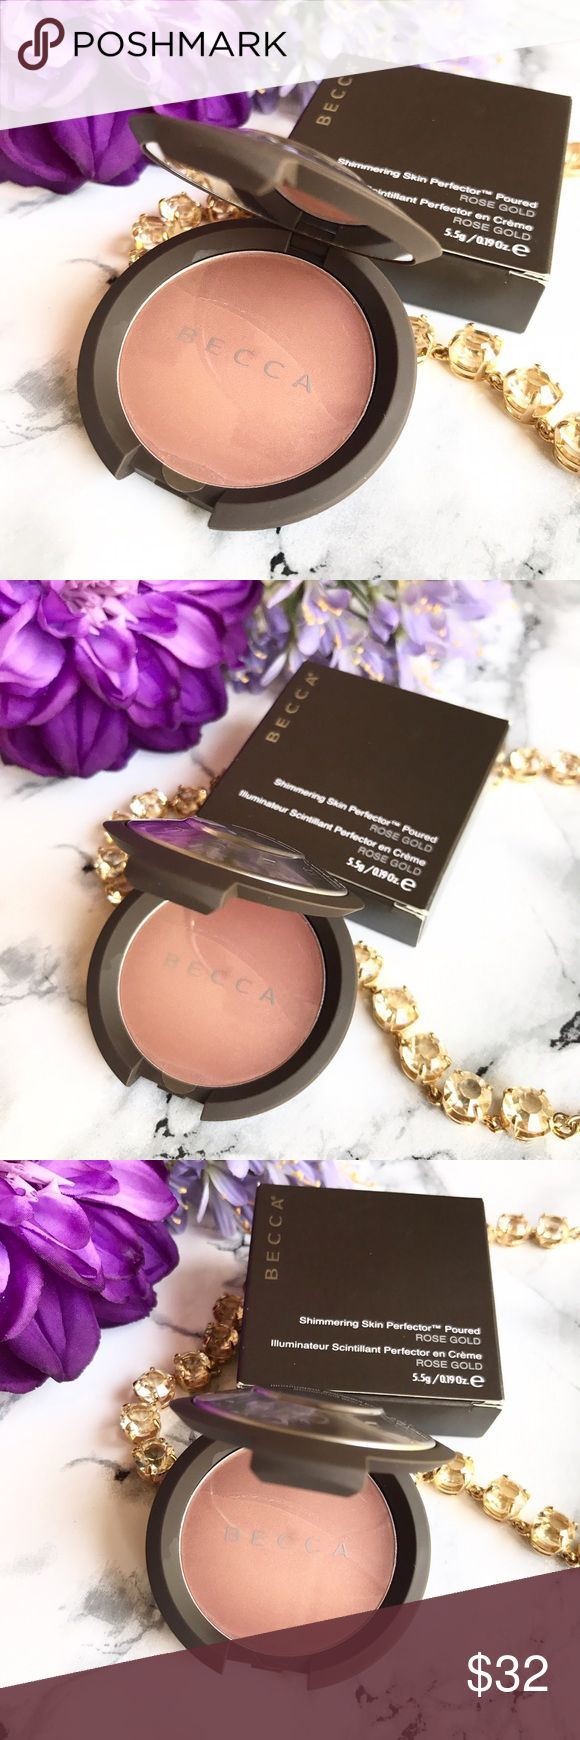 🆕 NEW 🌷 Becca Skin Perfector POURED - Rose Gold 🆕 NEW 🌷 Becca Shimmering Skin Perfector POURED in ROSE GOLD 🍃 Full Size 🍃 Brand New * Never Used * Never Swatched 💕 FIRM PRICE 💕 BECCA Makeup Luminizer